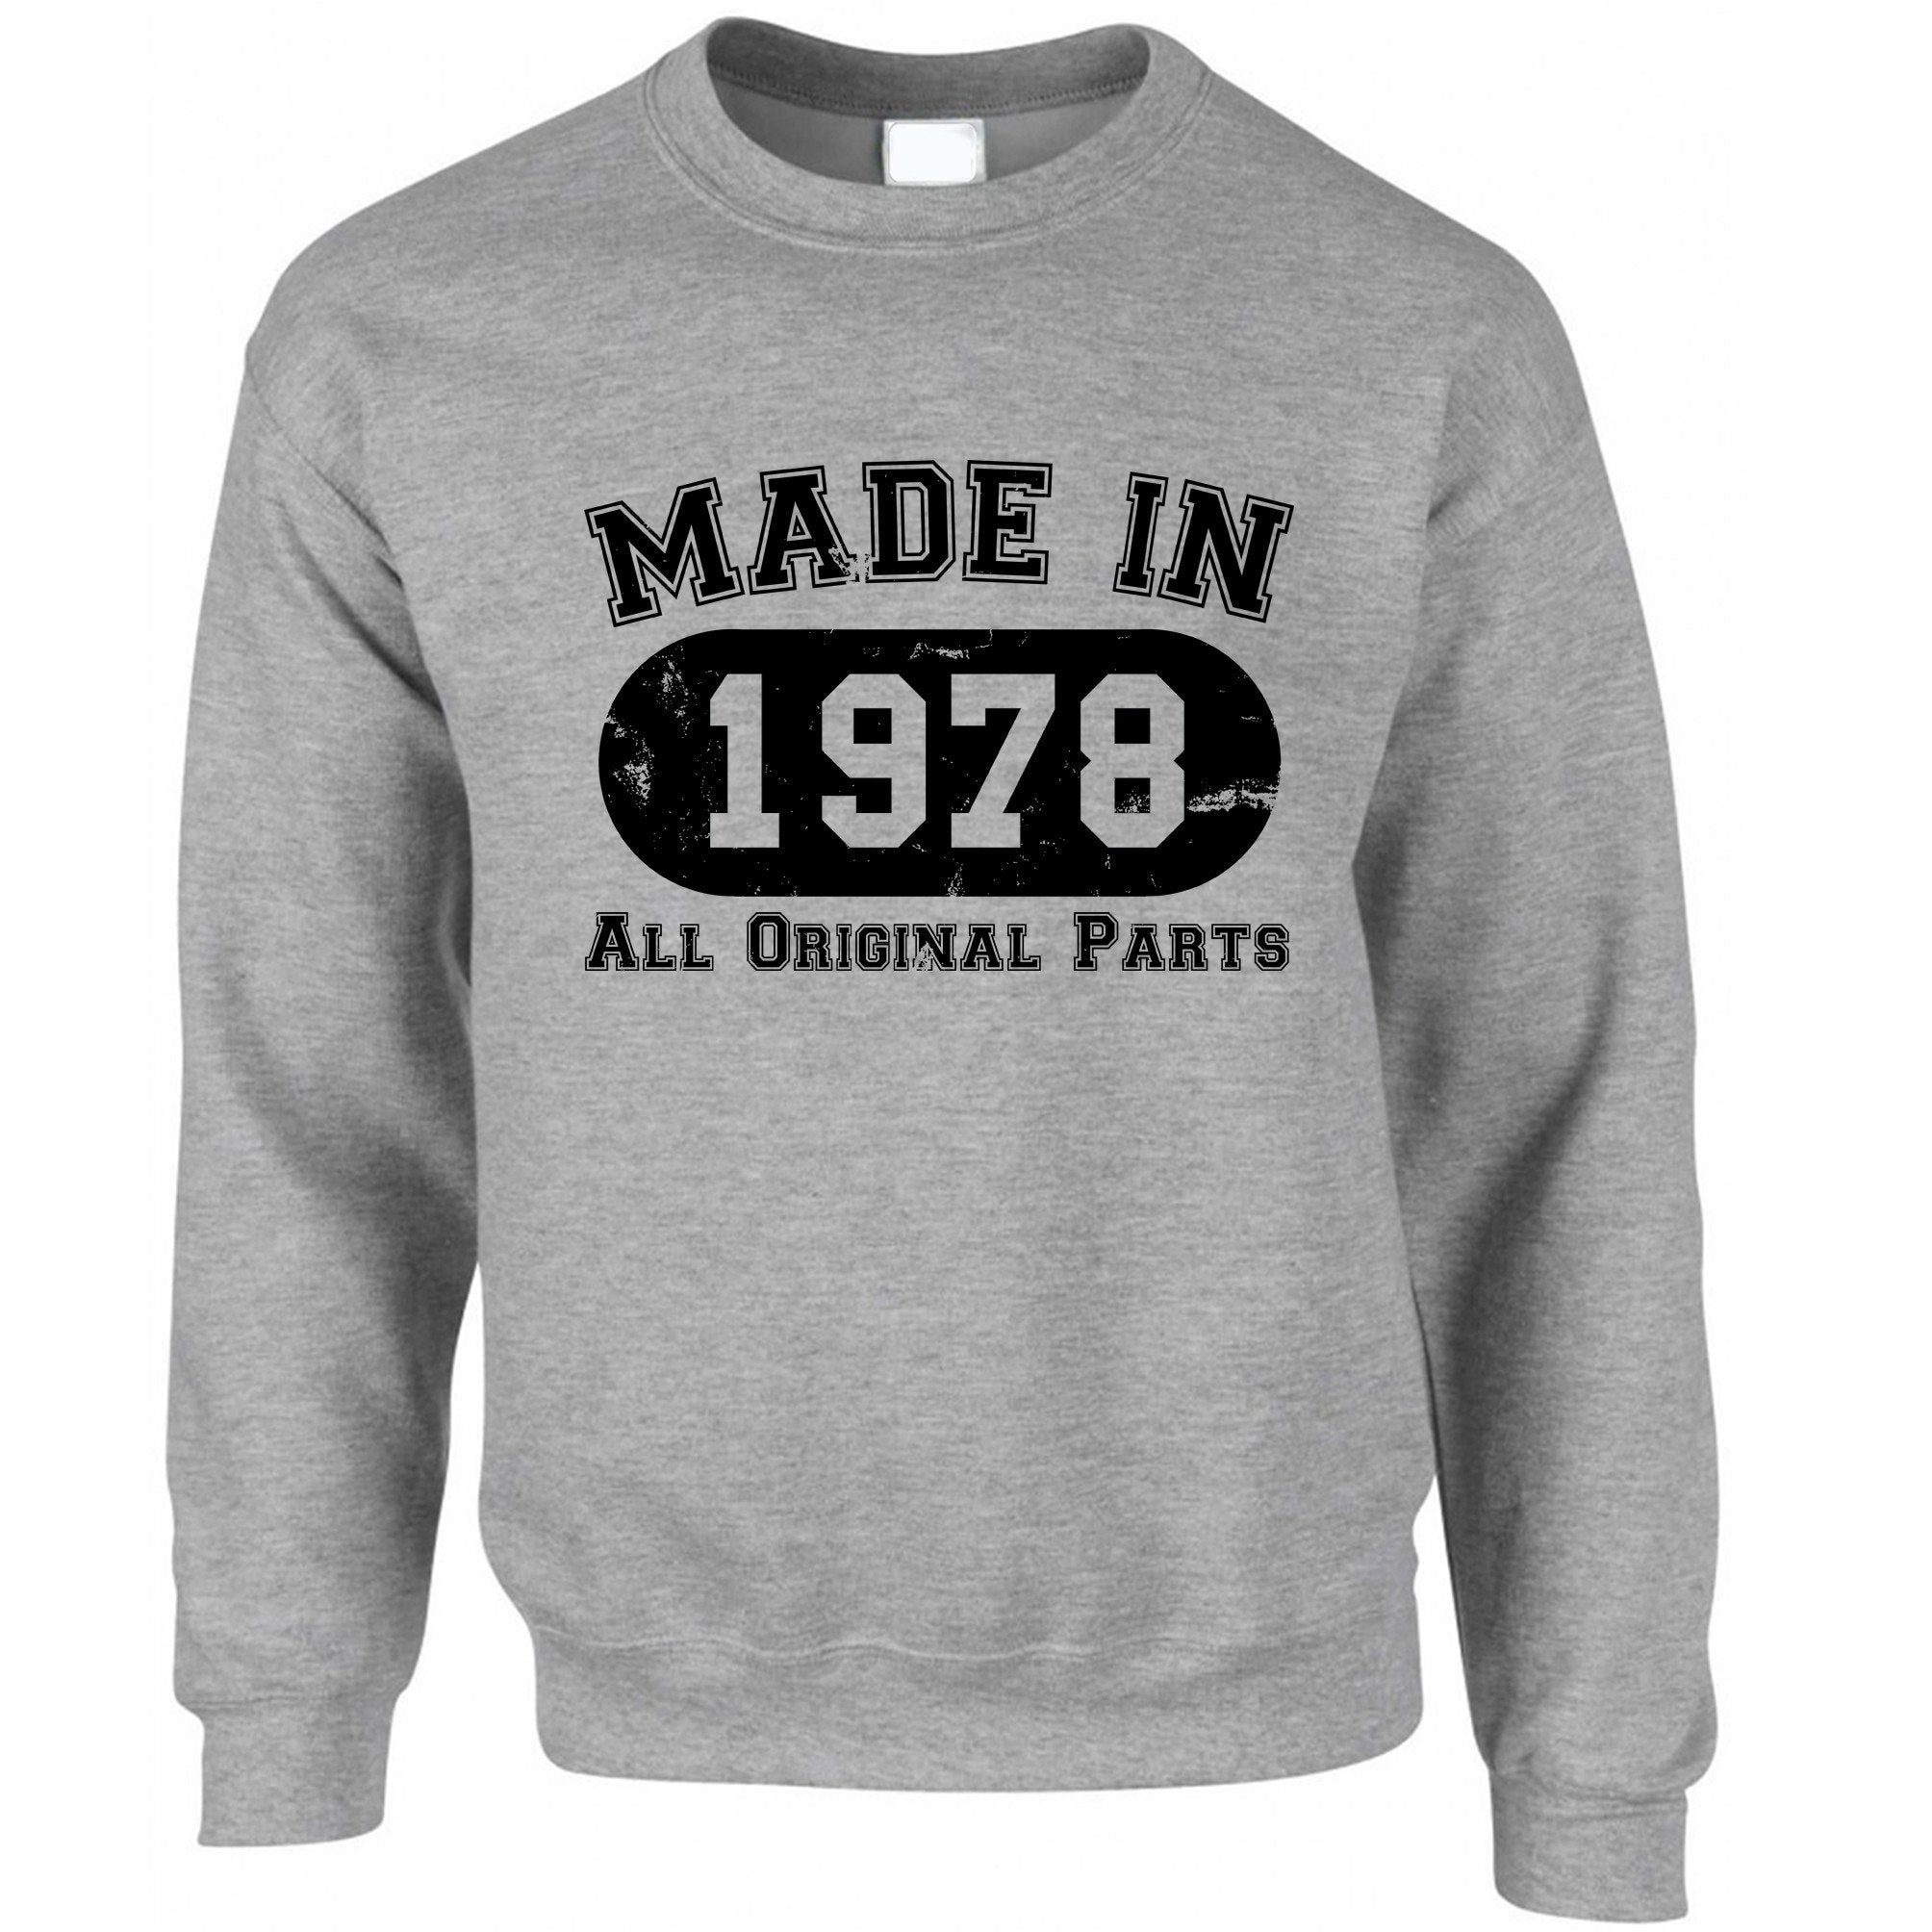 Made in 1978 All Original Parts Sweatshirt Jumper [Distressed]